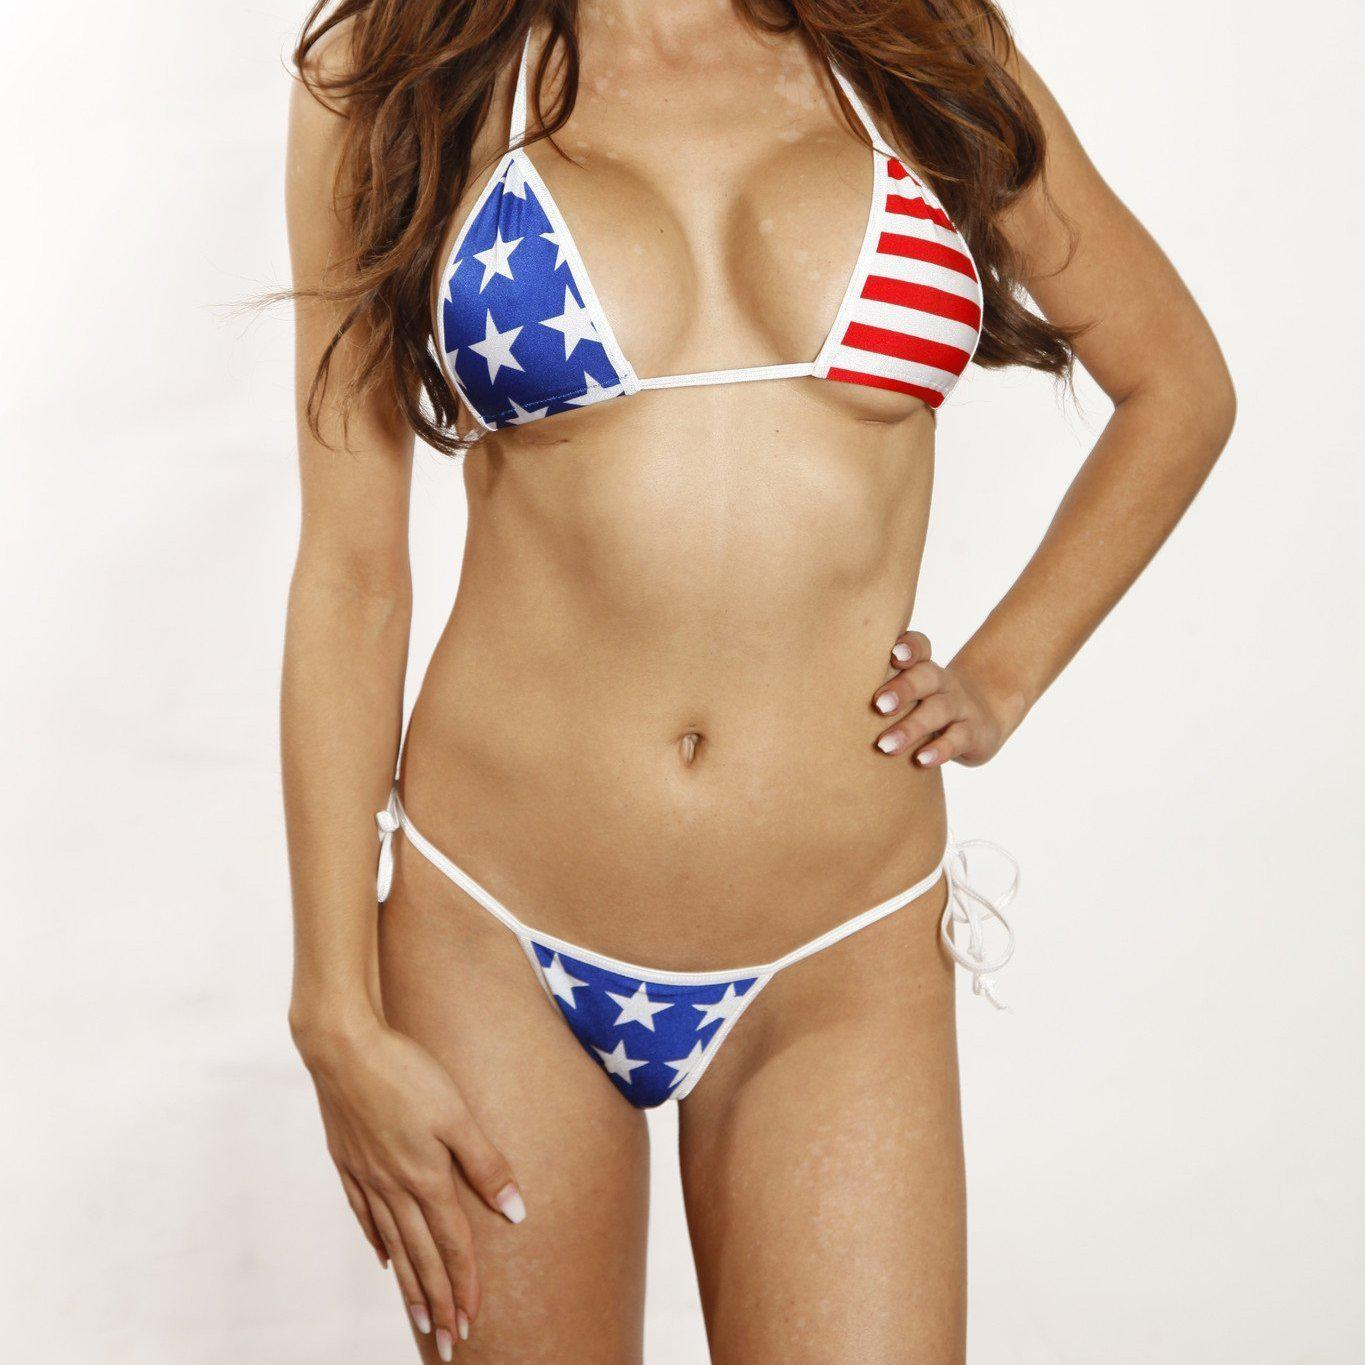 8450dcd32a Sexy Model in Bitsy s Bikinis Scrunch Butt Two Piece-Patriotic Stars    Stripes-White